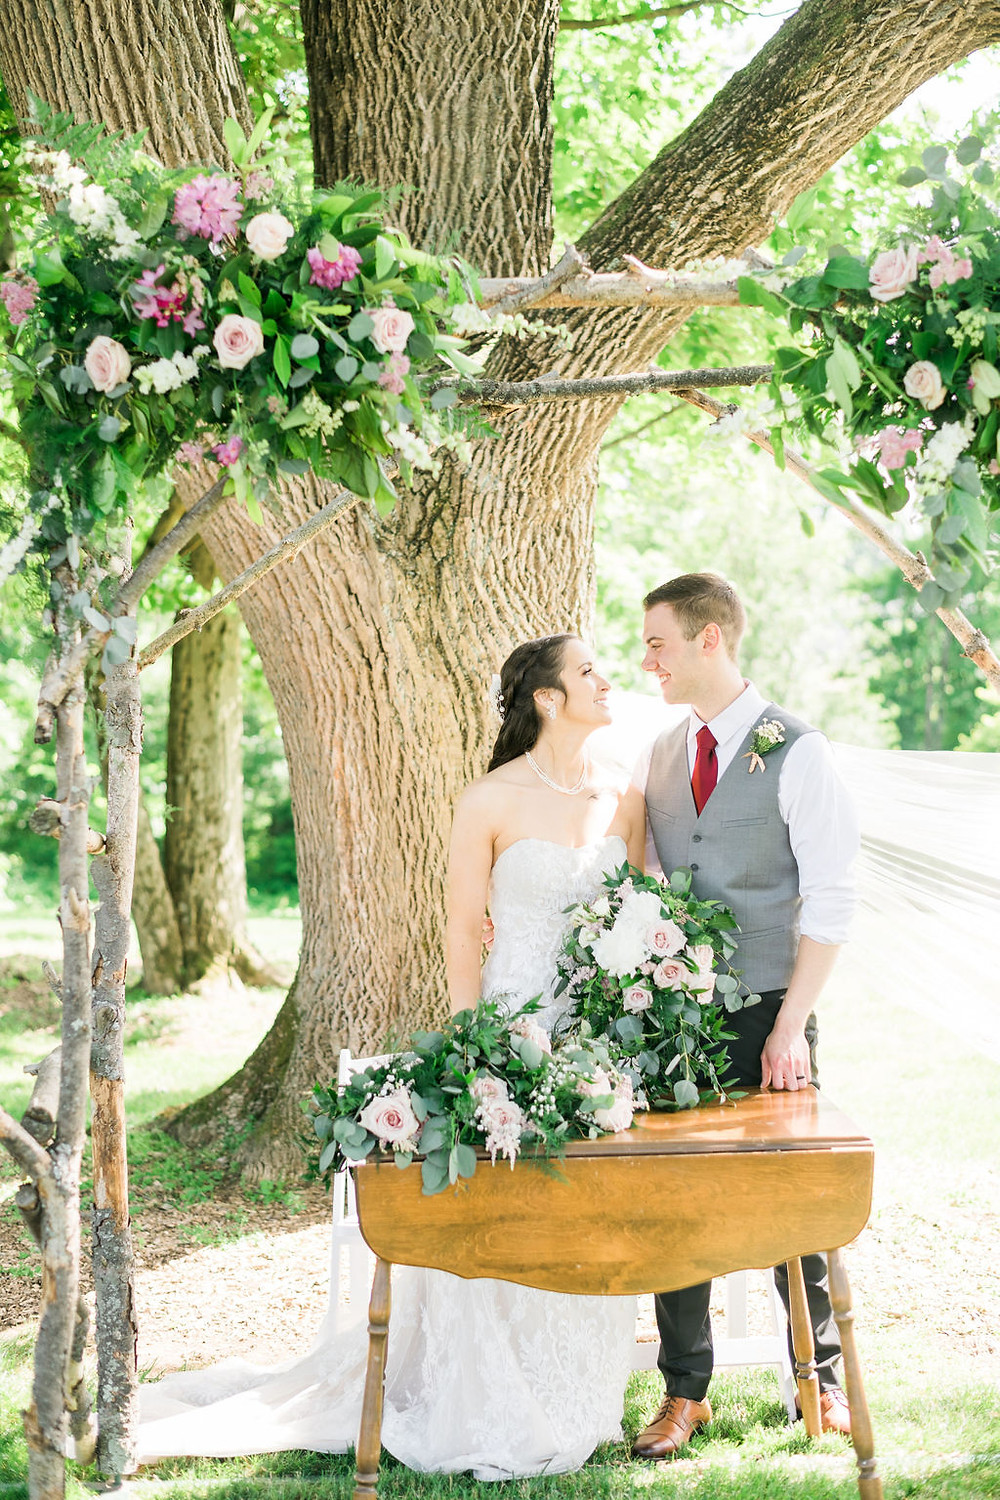 Newlyweds look at each other smiling under their ceremony arbor. Pink & white flowers w/ greenery.